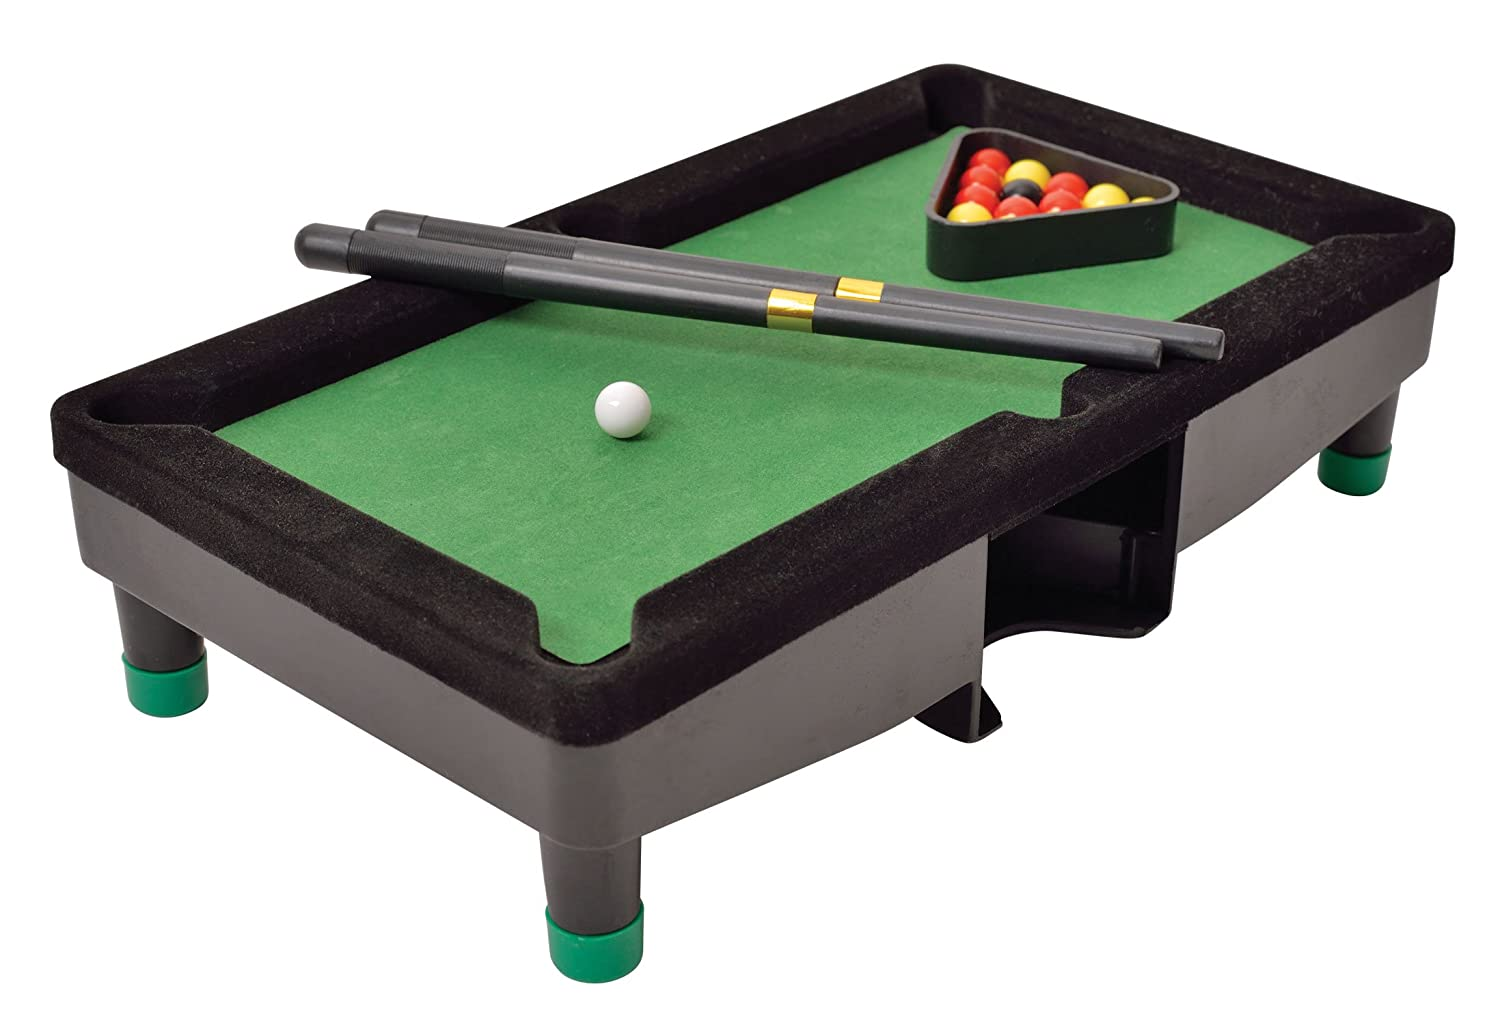 Amazon.com Perfect Life Ideas Desktop Miniature Pool Table Set with Mini Pool Balls Cue Sticks Accessories - Tabletop Toy Gaming for Men Women - Play ...  sc 1 st  Amazon.com & Amazon.com: Perfect Life Ideas Desktop Miniature Pool Table Set with ...